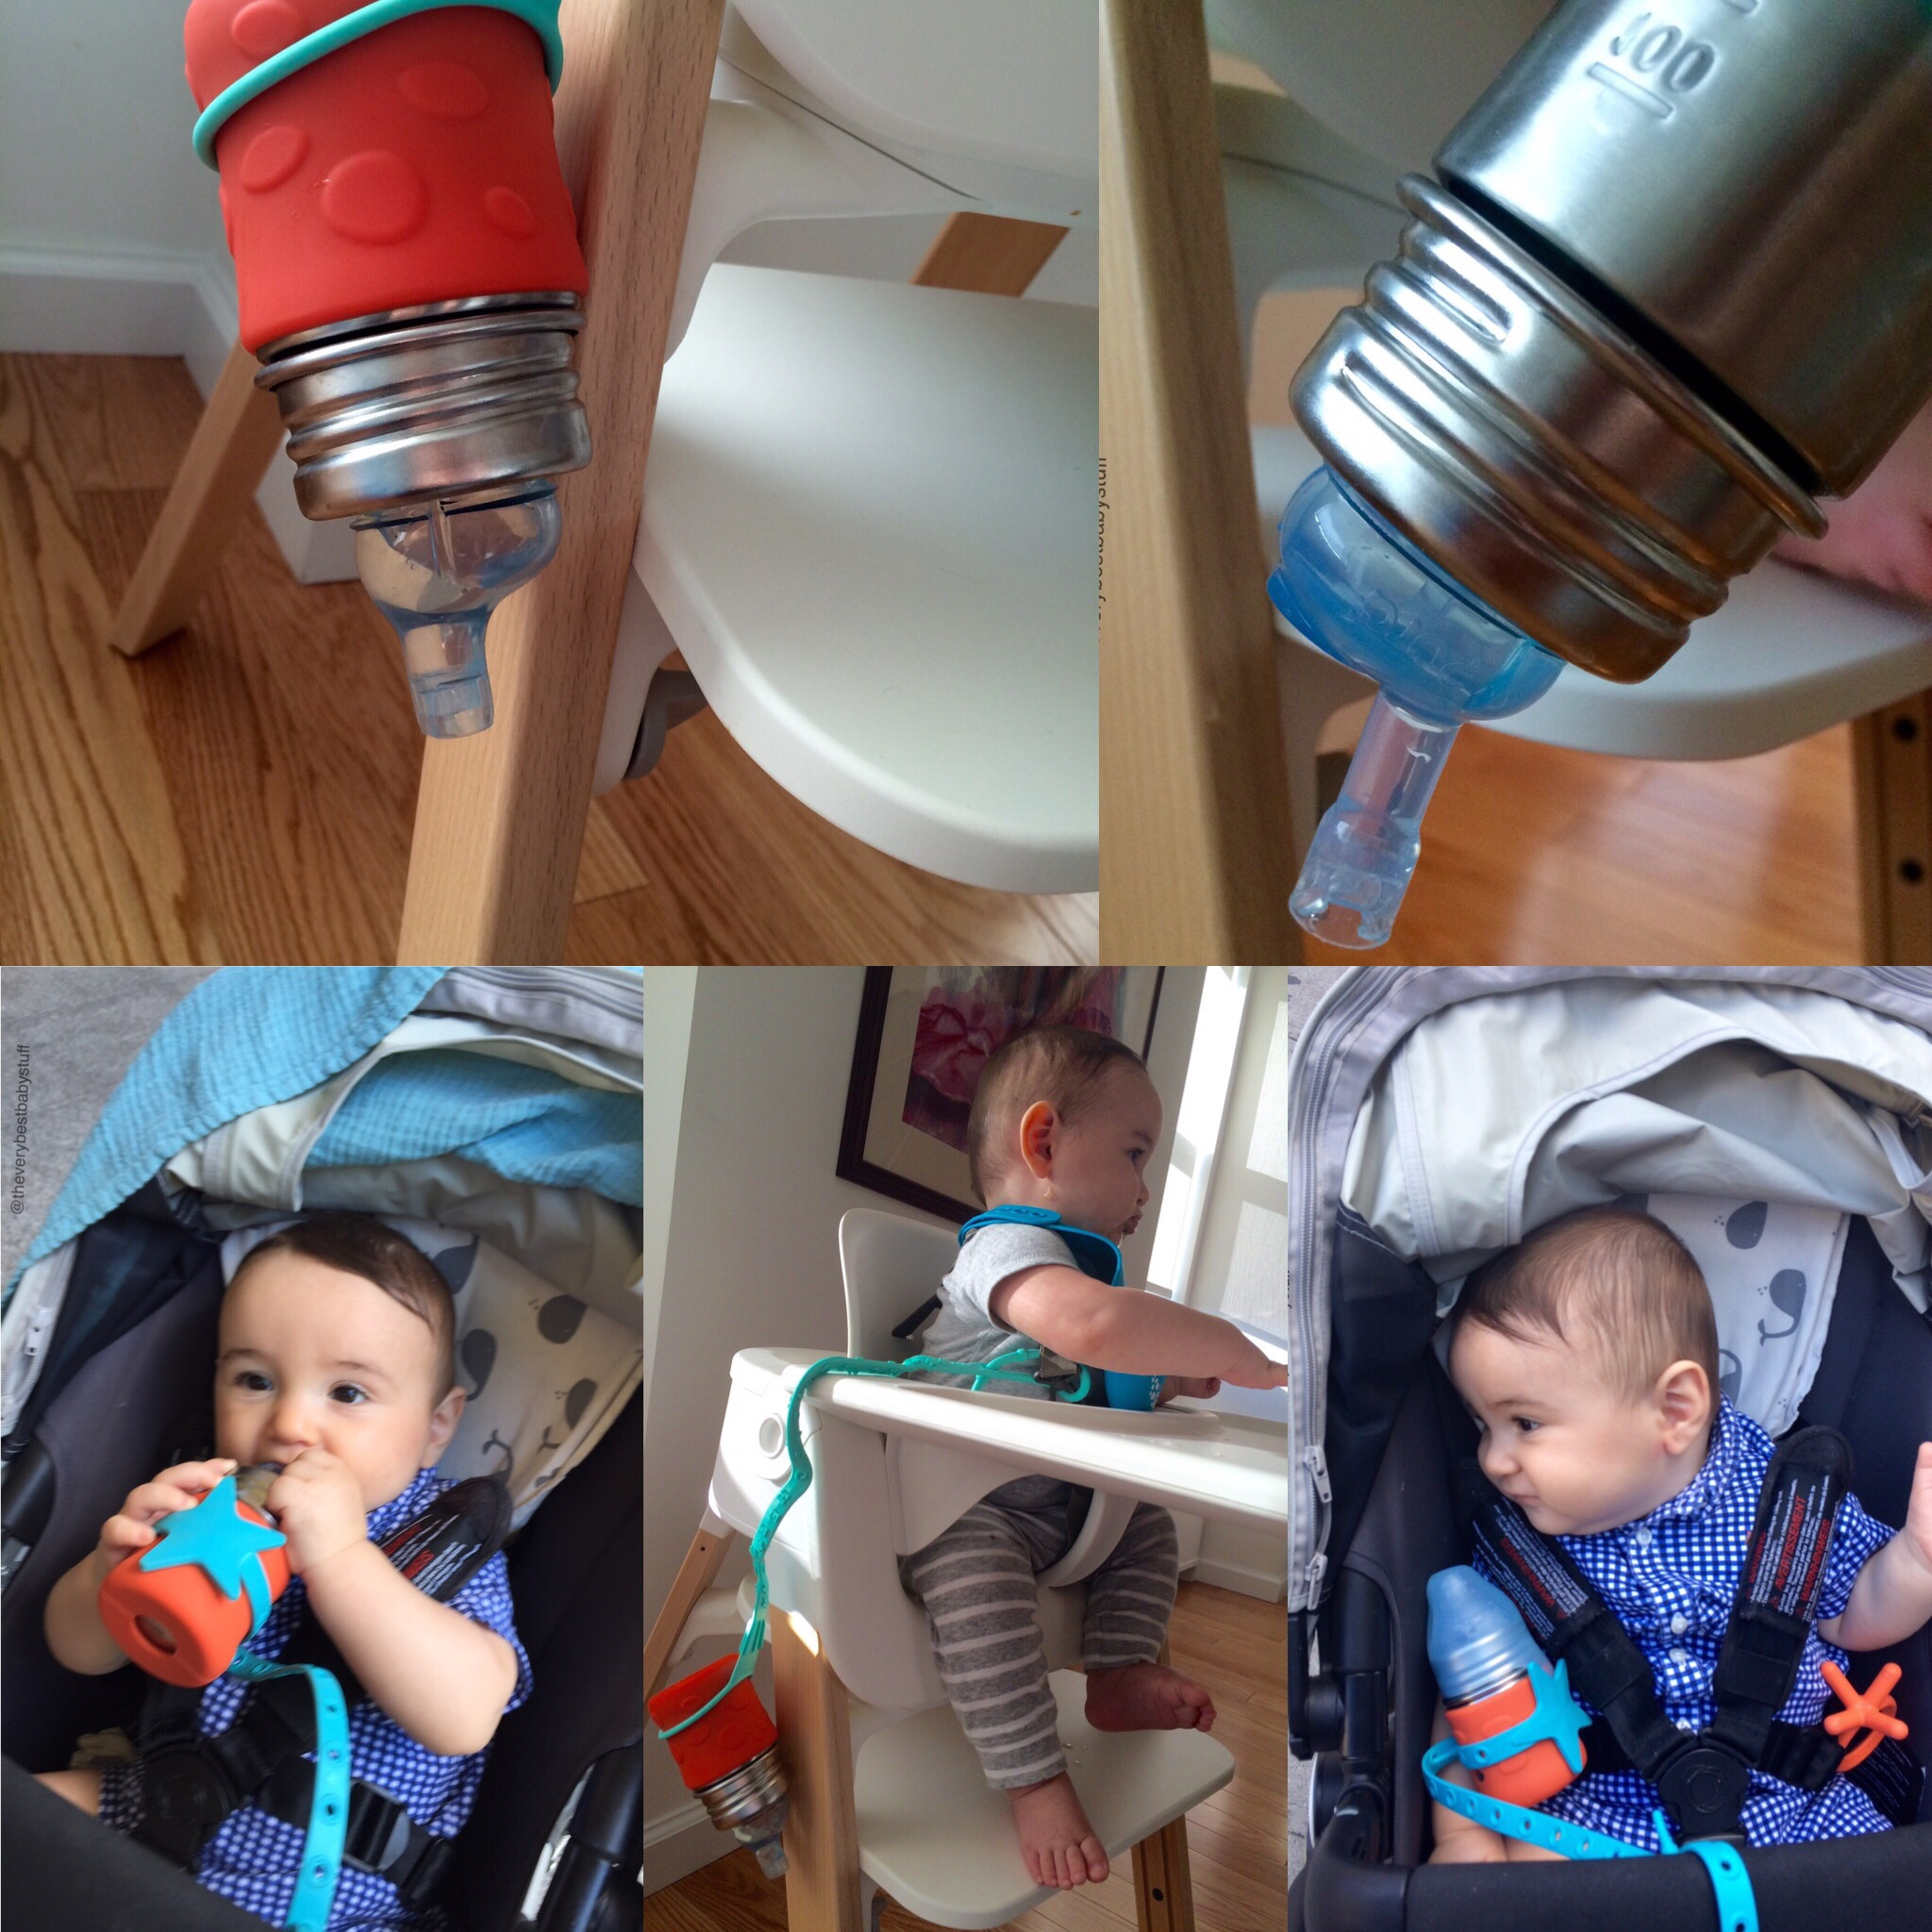 When my son was younger I would use the  Brilli  or  Lil Sidekick  leash to keep the  sippy cup  from falling off the  high chair  or out of the  stroller . See how it dangles upside down without dripping at all? You can buy the leashes by clicking   here  or  here .